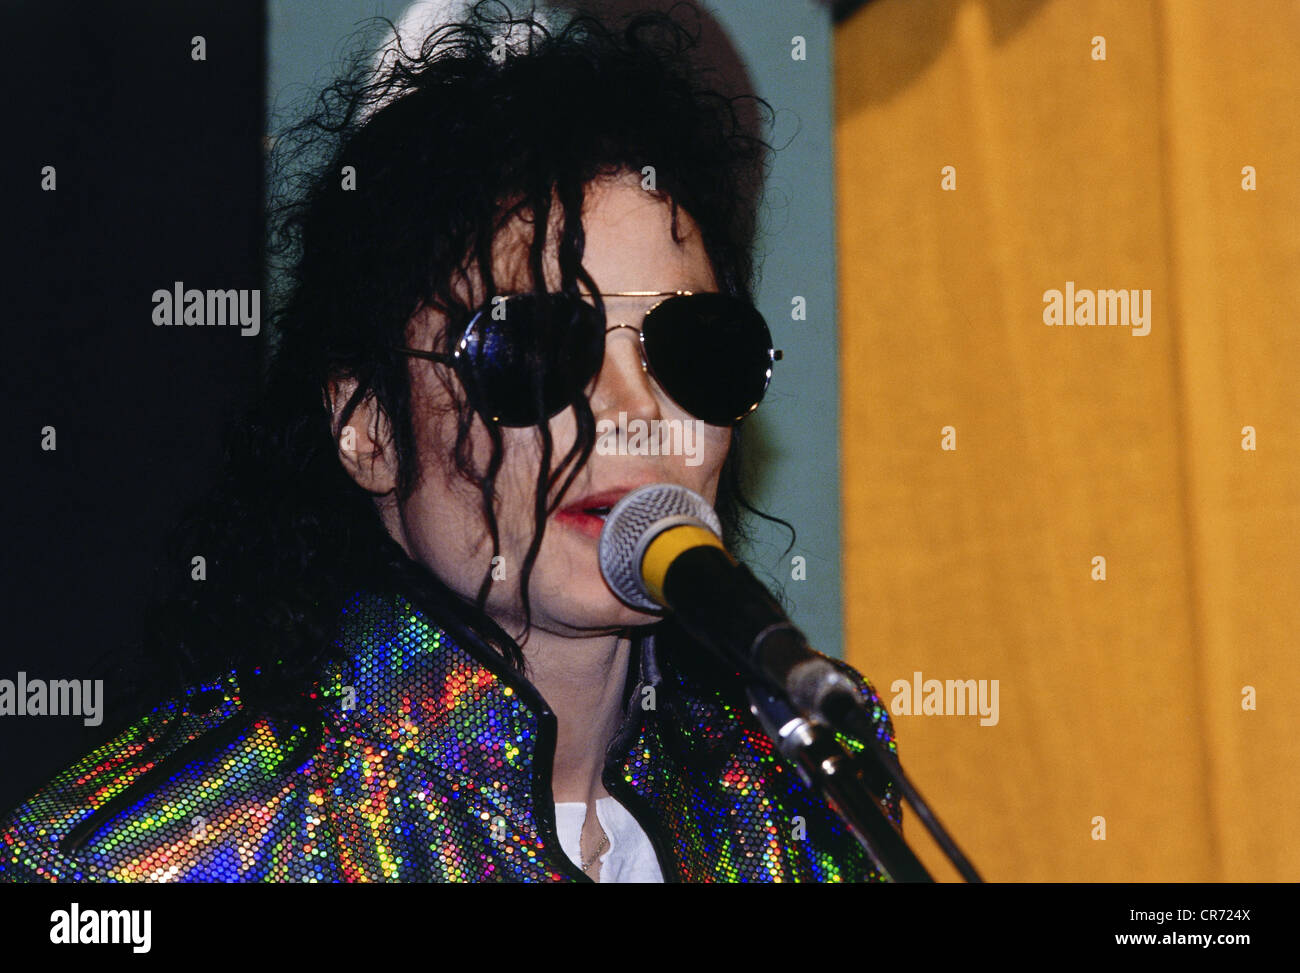 Jackson, Michael, 29.8.1958 - 25.6.2009, American musician (pop singer), audience during his concert, Olympiastadion, - Stock Image